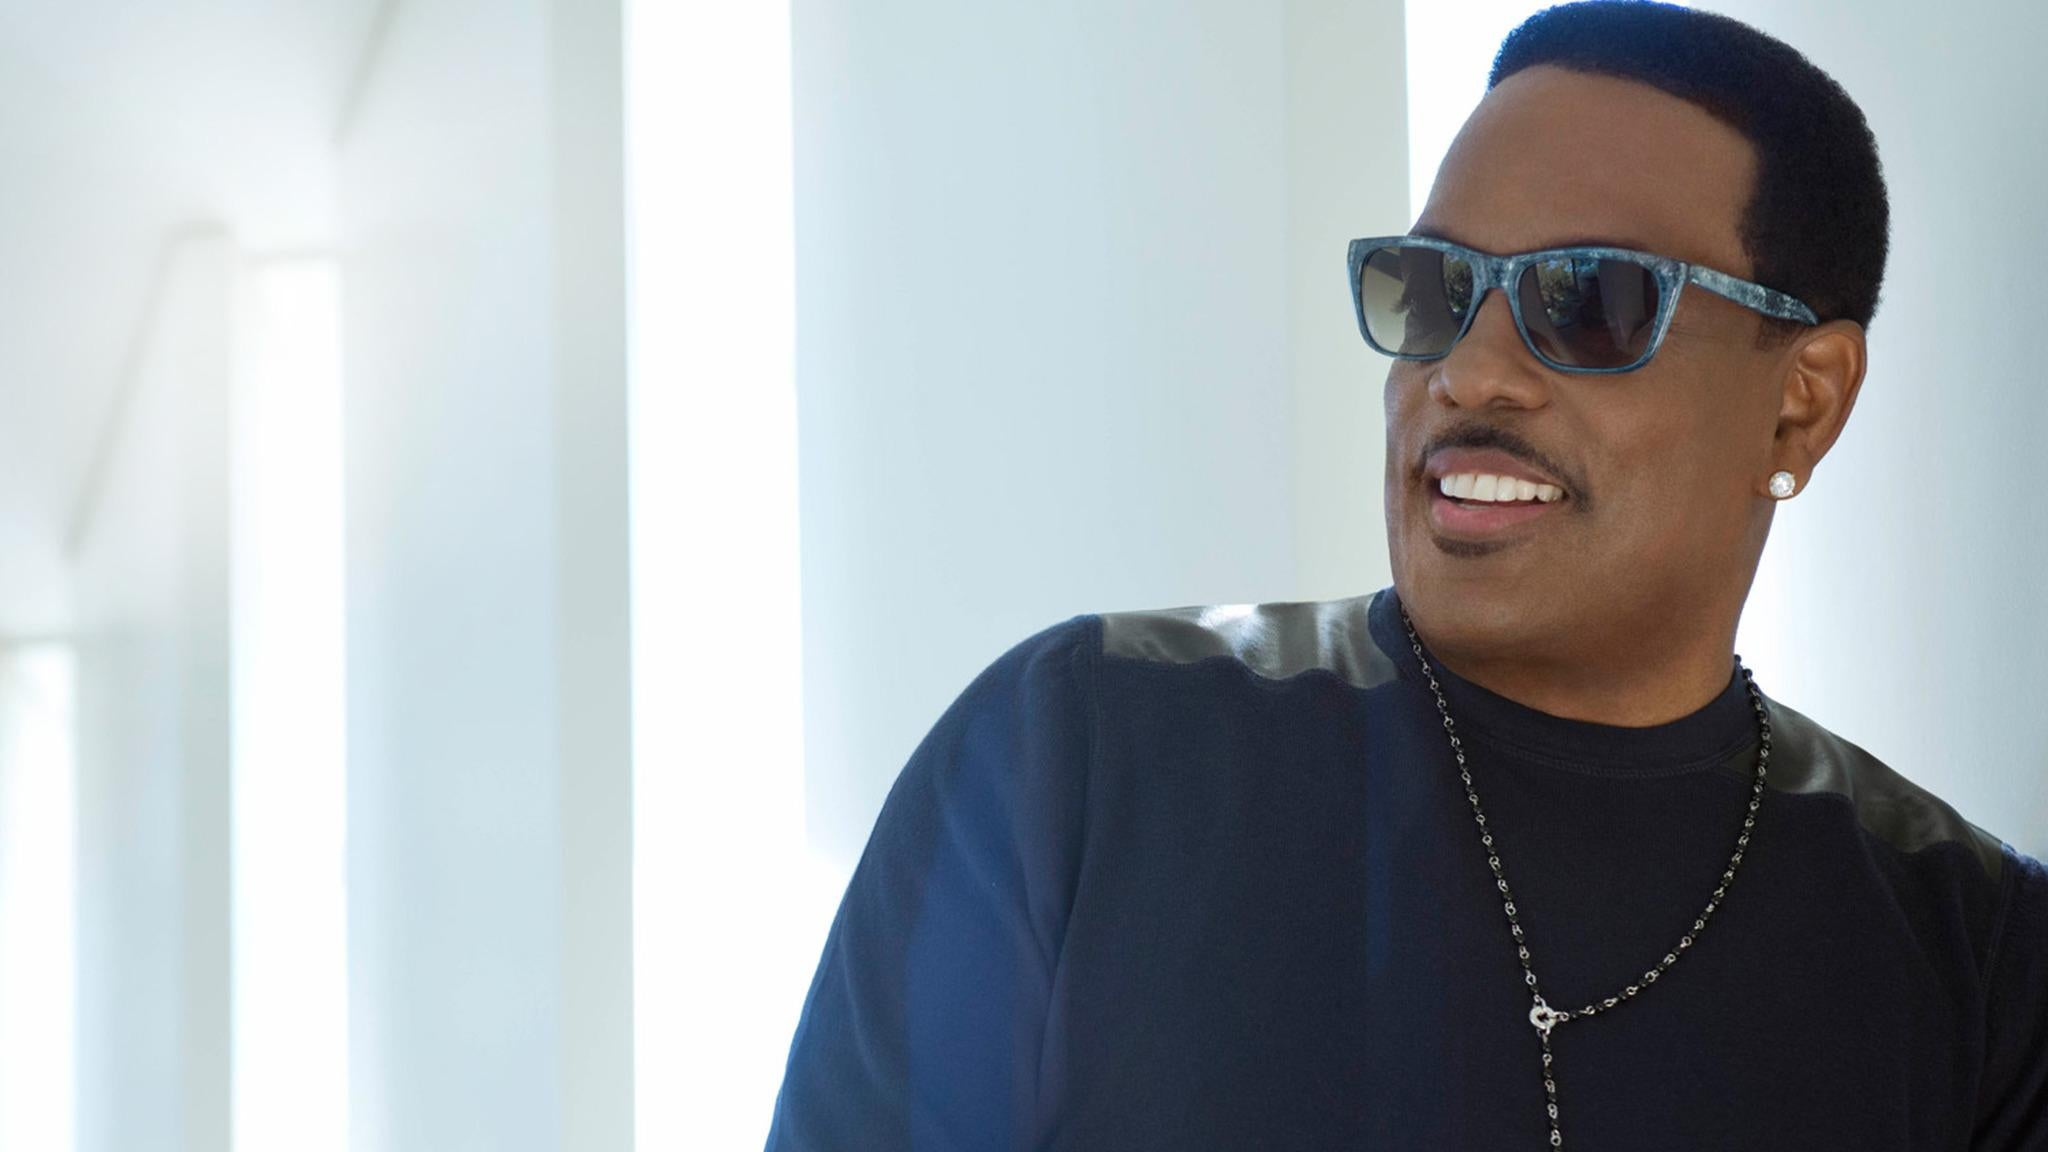 Charlie Wilson at Pechanga Resort and Casino